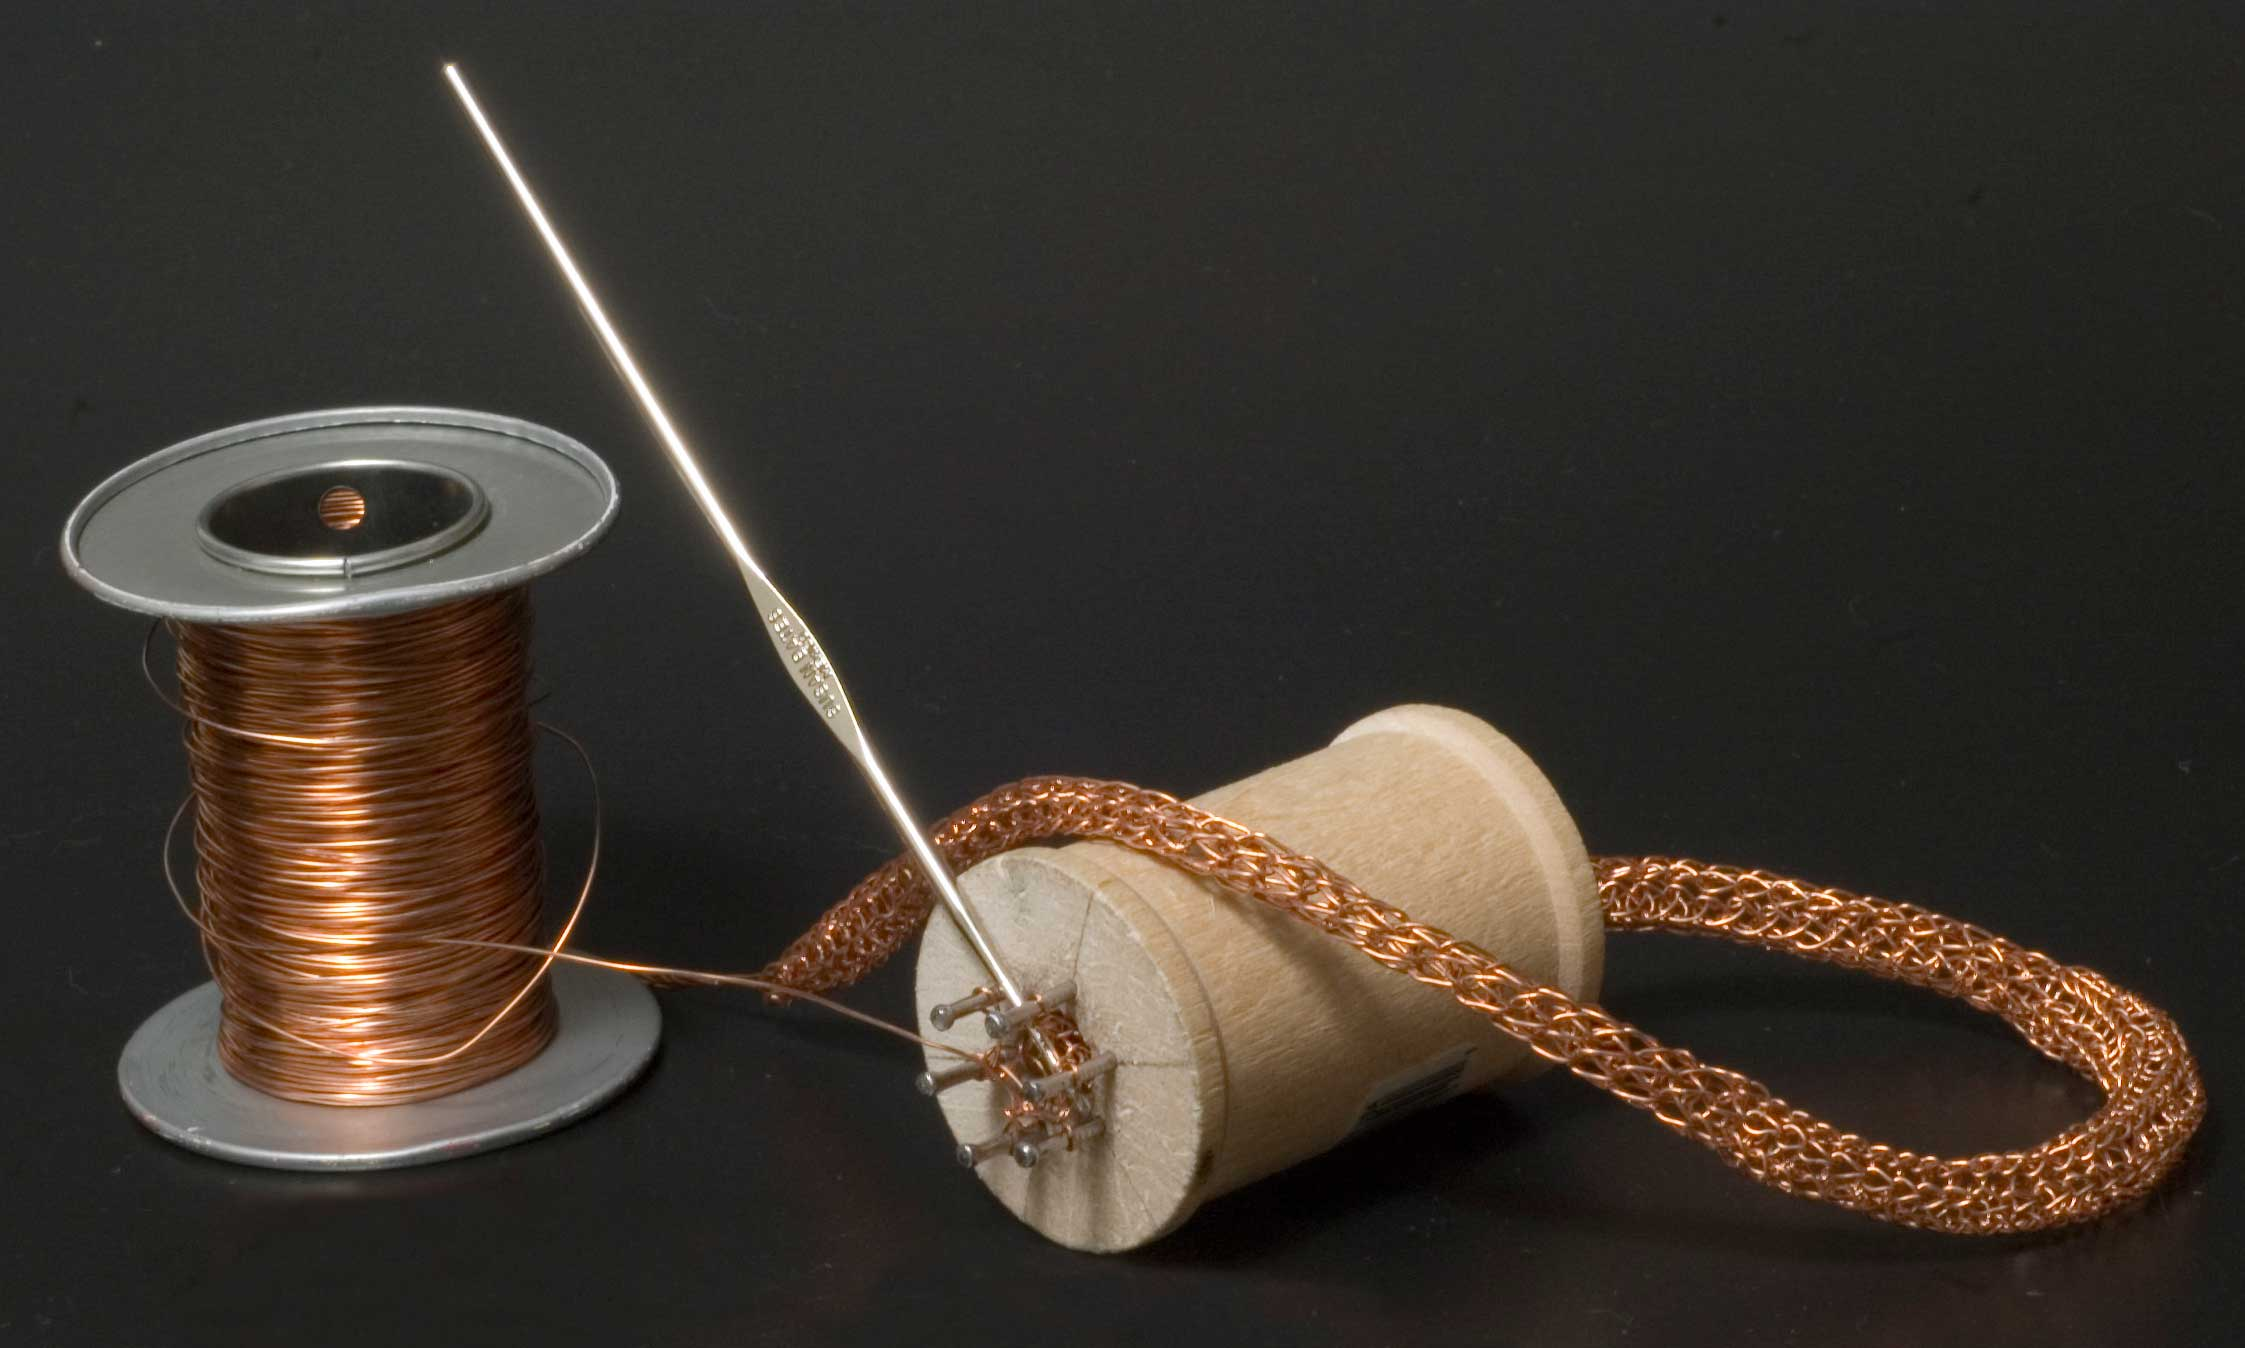 Spool Knitting With Wire : Make a wire knitting spool shoebox studio jewelry